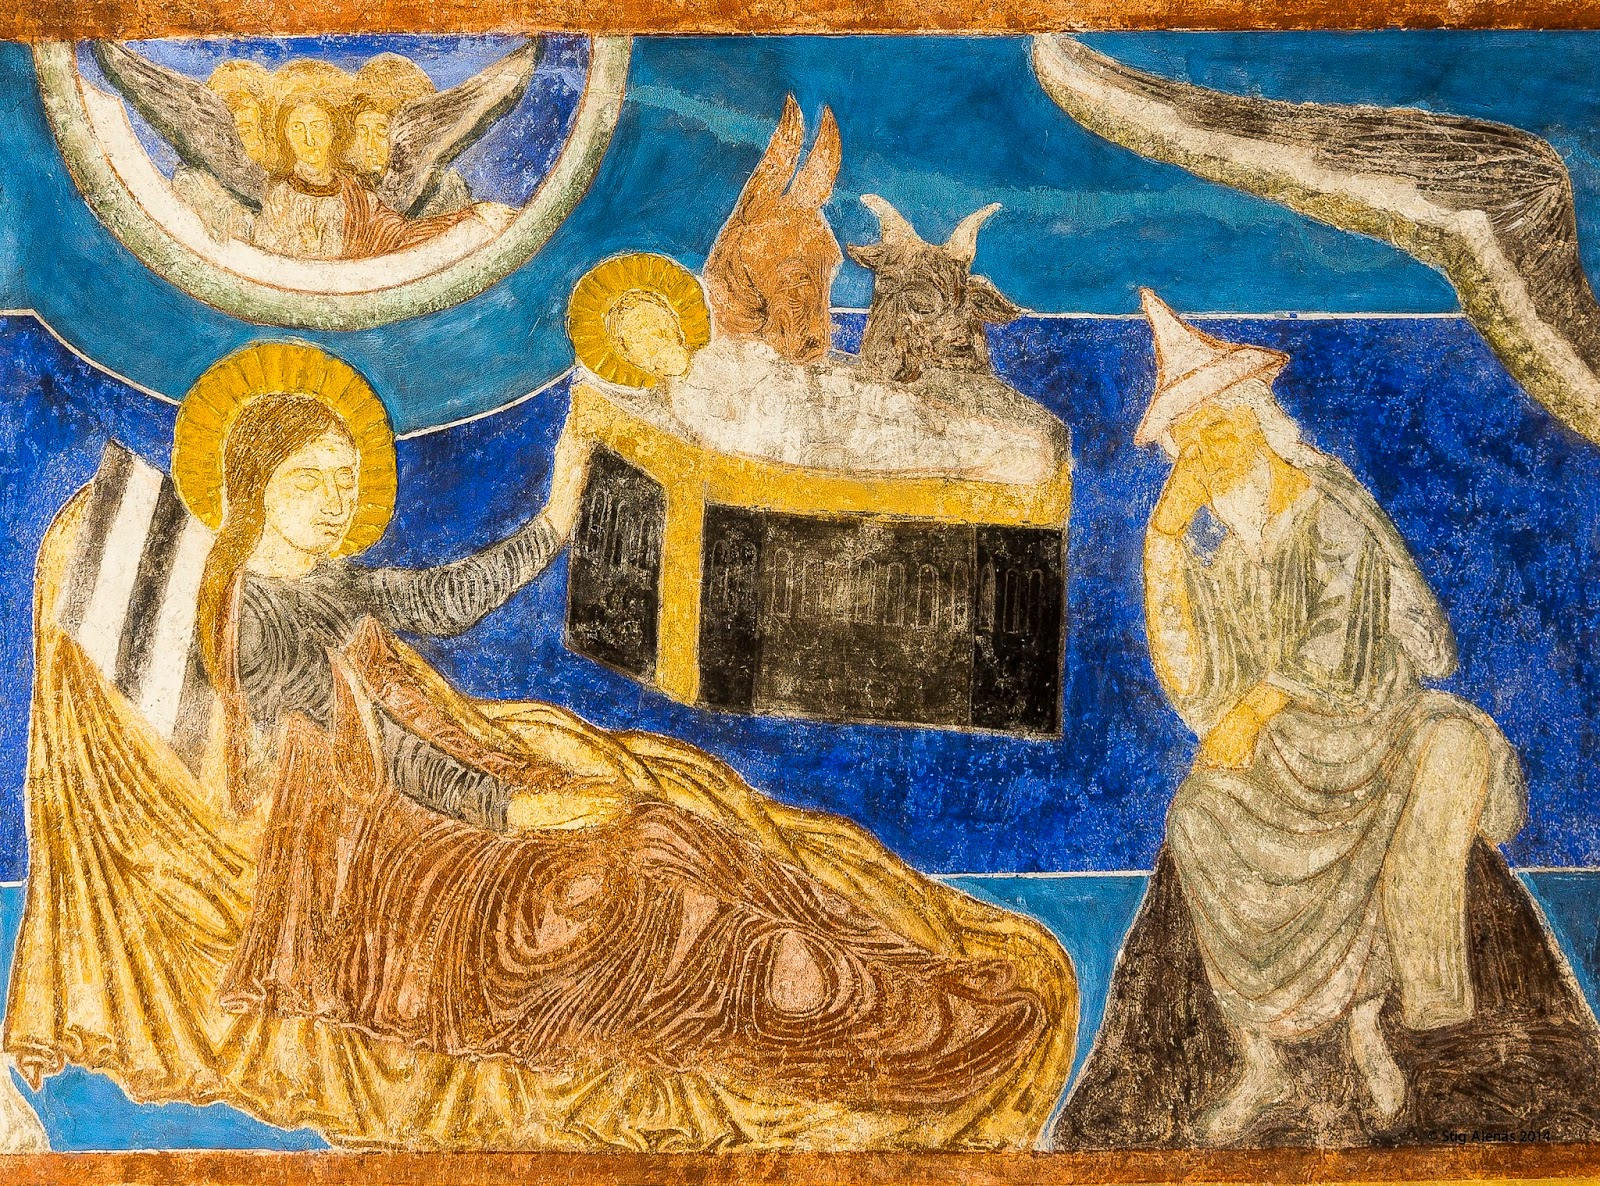 birth, medieval, baby, mural, joseph, nativity, christian, holiday, night, xmas, jesus, christmas, editorial, sweden, stable, church, bible, christ, painting, ultramarine, fresco, religion, infant, byzantine, scene, child, savior, bethlehem, mary, romanesque, bjaresjo, https://www.shutterstock.com/image-photo/byzantine-fresco-bjaresjo-church-sweden-sept-531577678